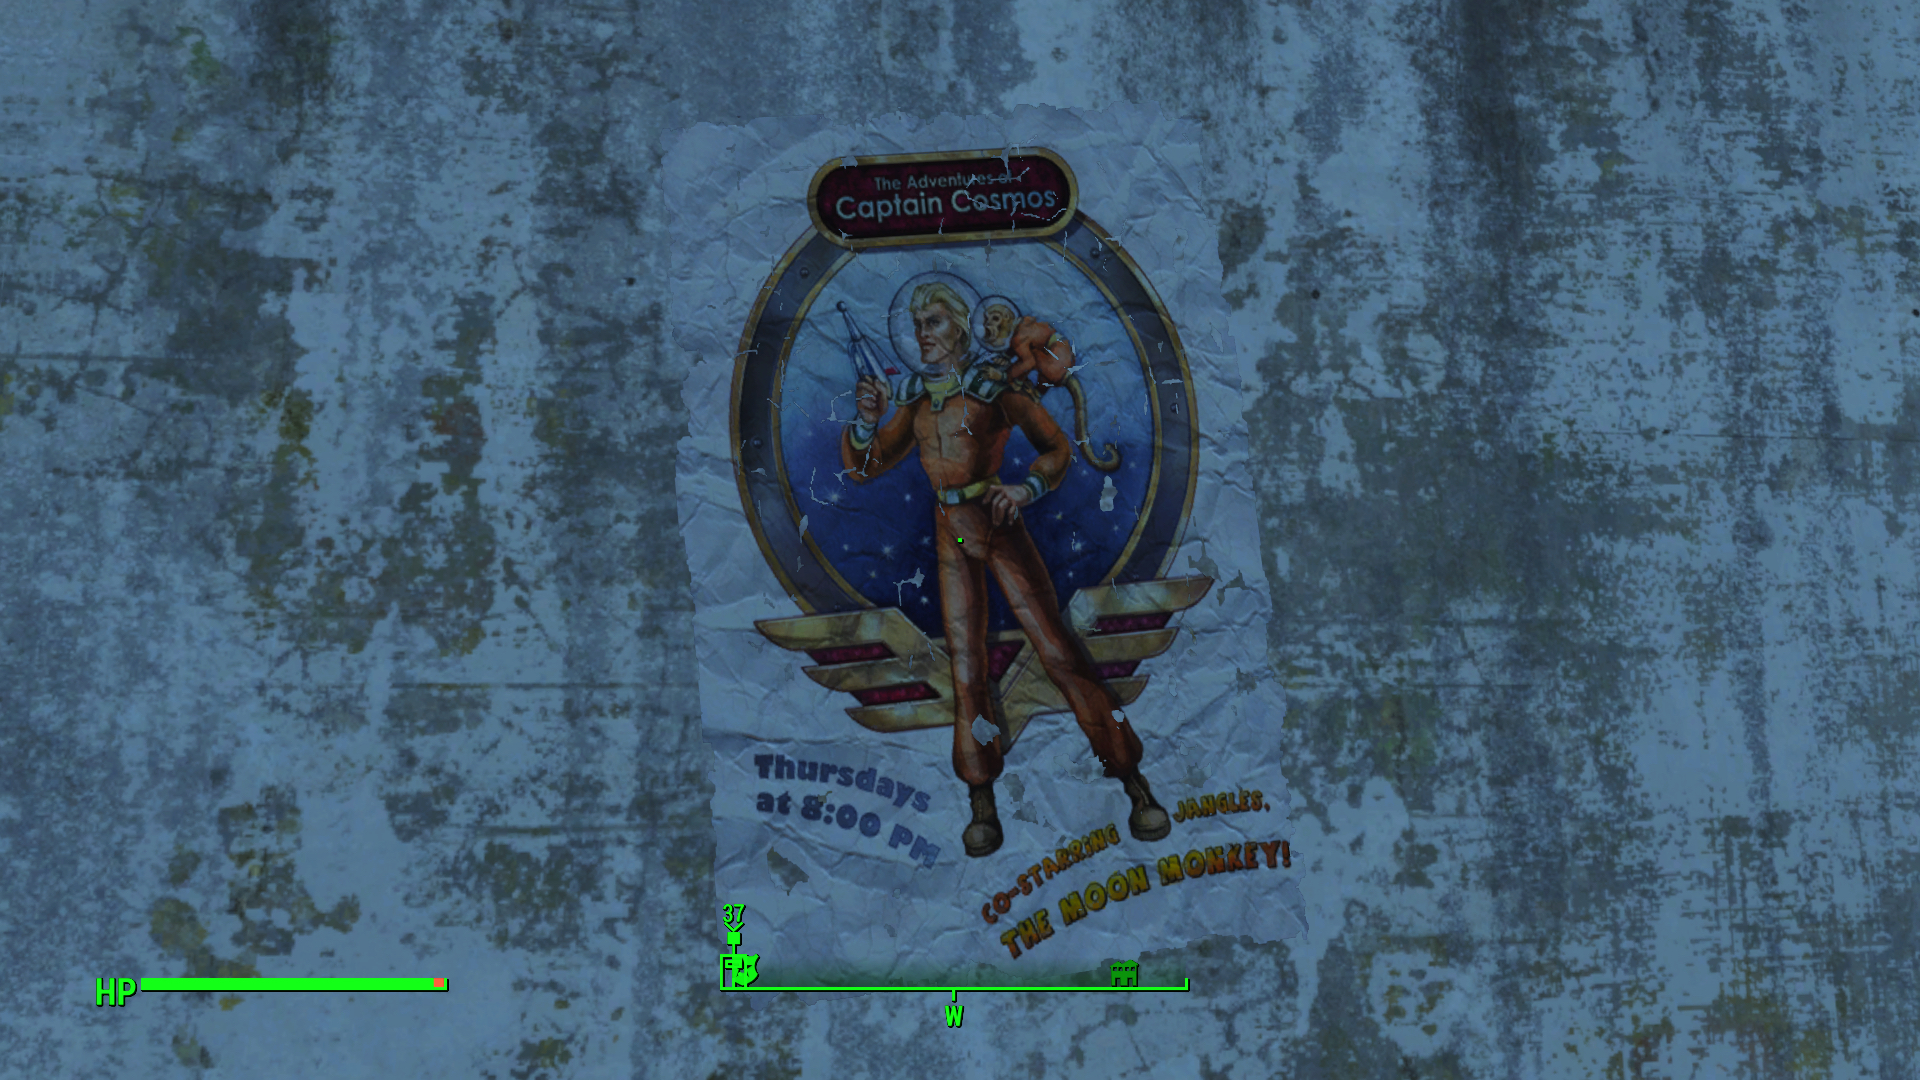 Fallout 4 Update Patch 16 Notes Revealed For PS4 And Xbox One